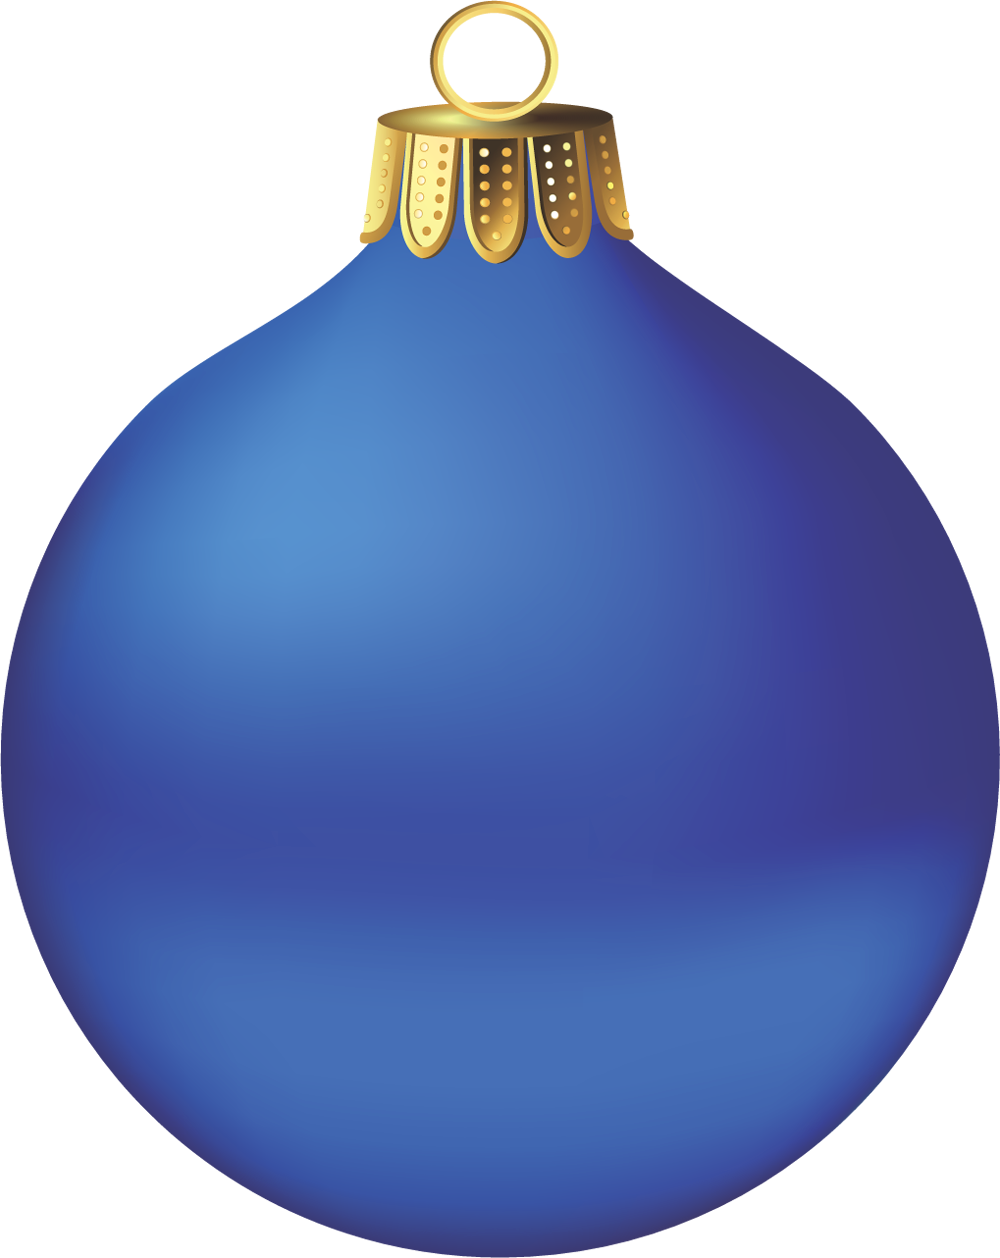 Holiday clipart christmas ornament. Image result for pinterest